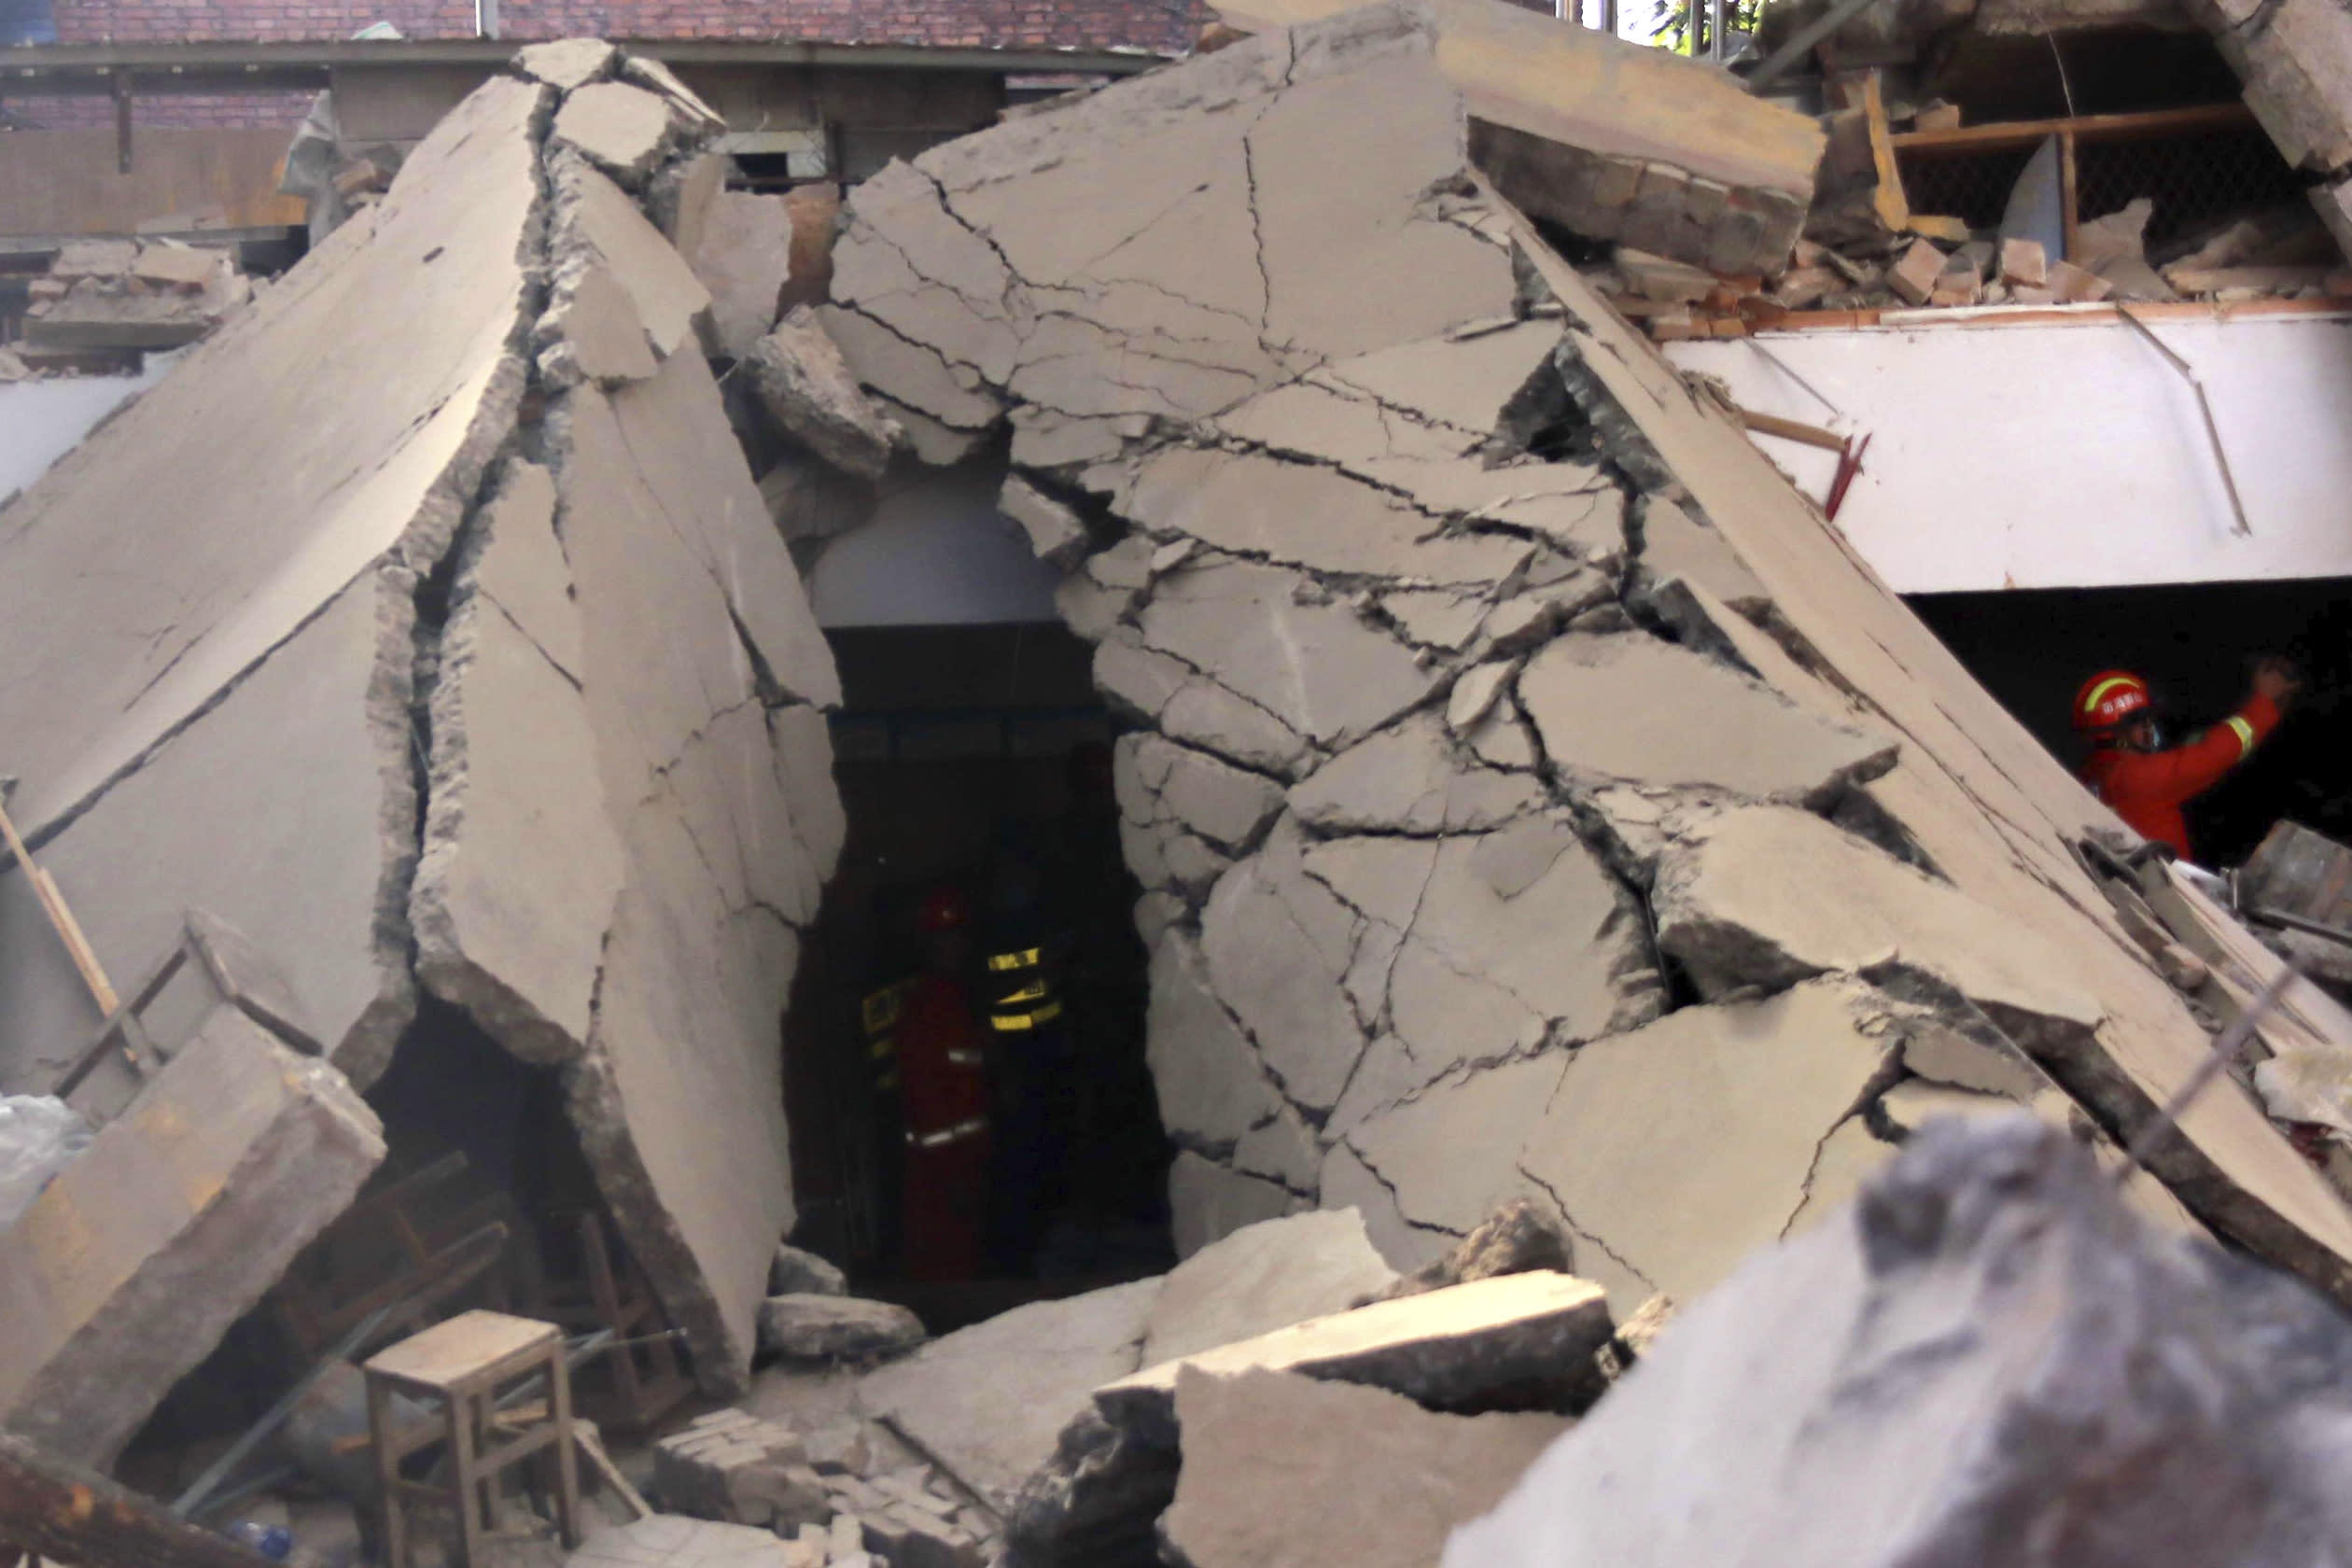 Rescuers search for victims in the aftermath of the collapse of a two-story restaurant in Xiangfen county in northern China's Shanxi province on Saturday, Aug. 29, 2020. More than a dozen were killed after the restaurant collapse during a gathering. (Chinatopix Via AP)